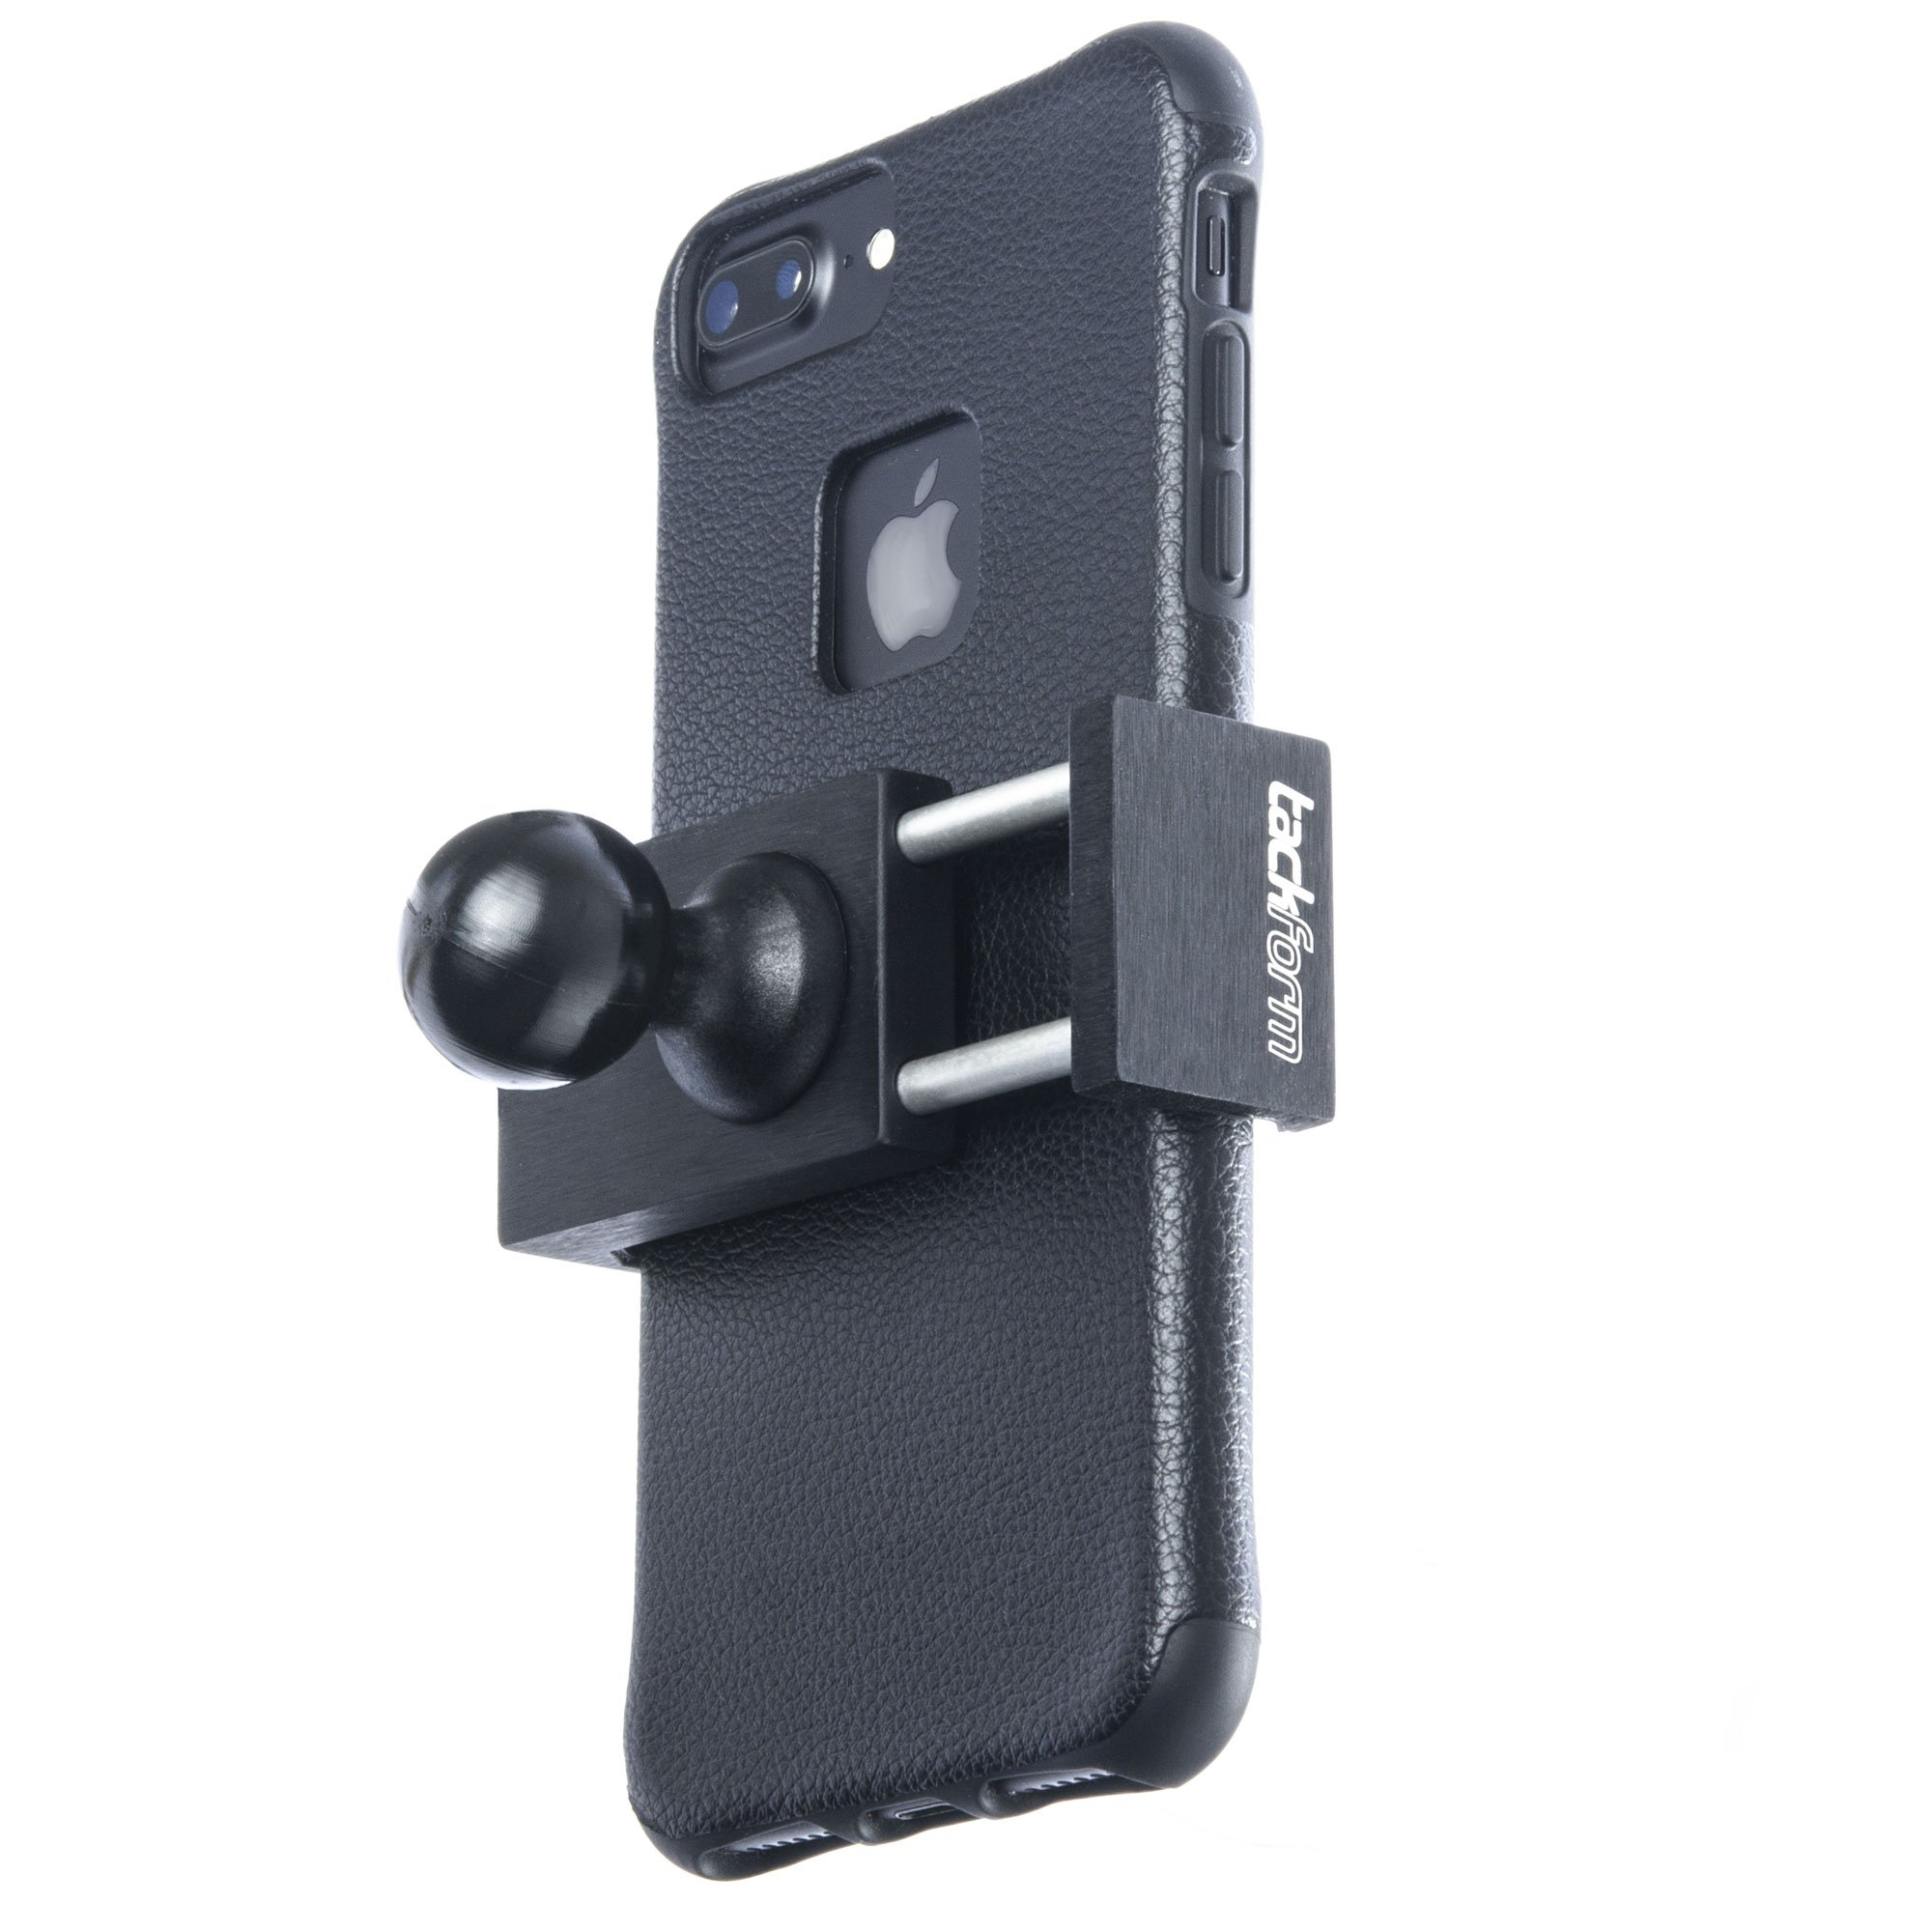 TACKFORM Motorcycle Phone Mount - 1'' Ball Connection - Heavy Duty Spring Loaded Phone Holder. Compatible with RAM and ARKON 1 Inch Ball System. NO TETHER NEEDED, but we include one anyway.